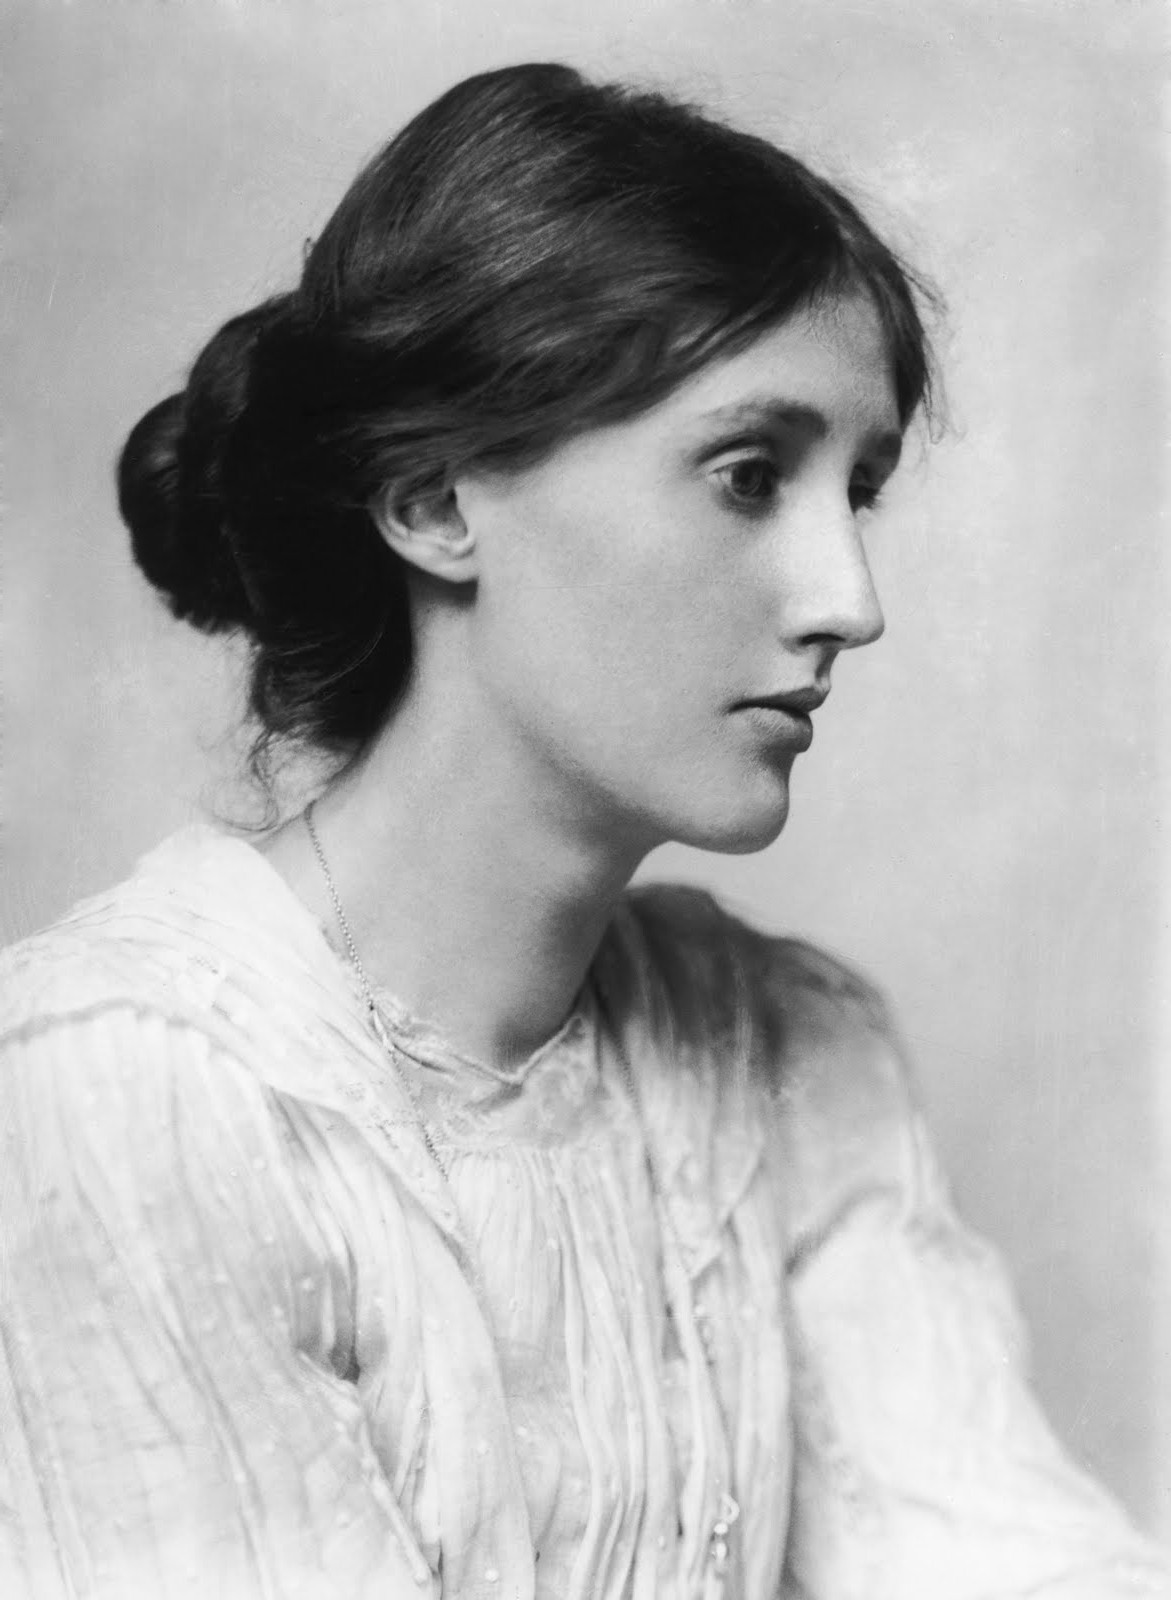 virginia woolf dissertation shakespeare sibling stay